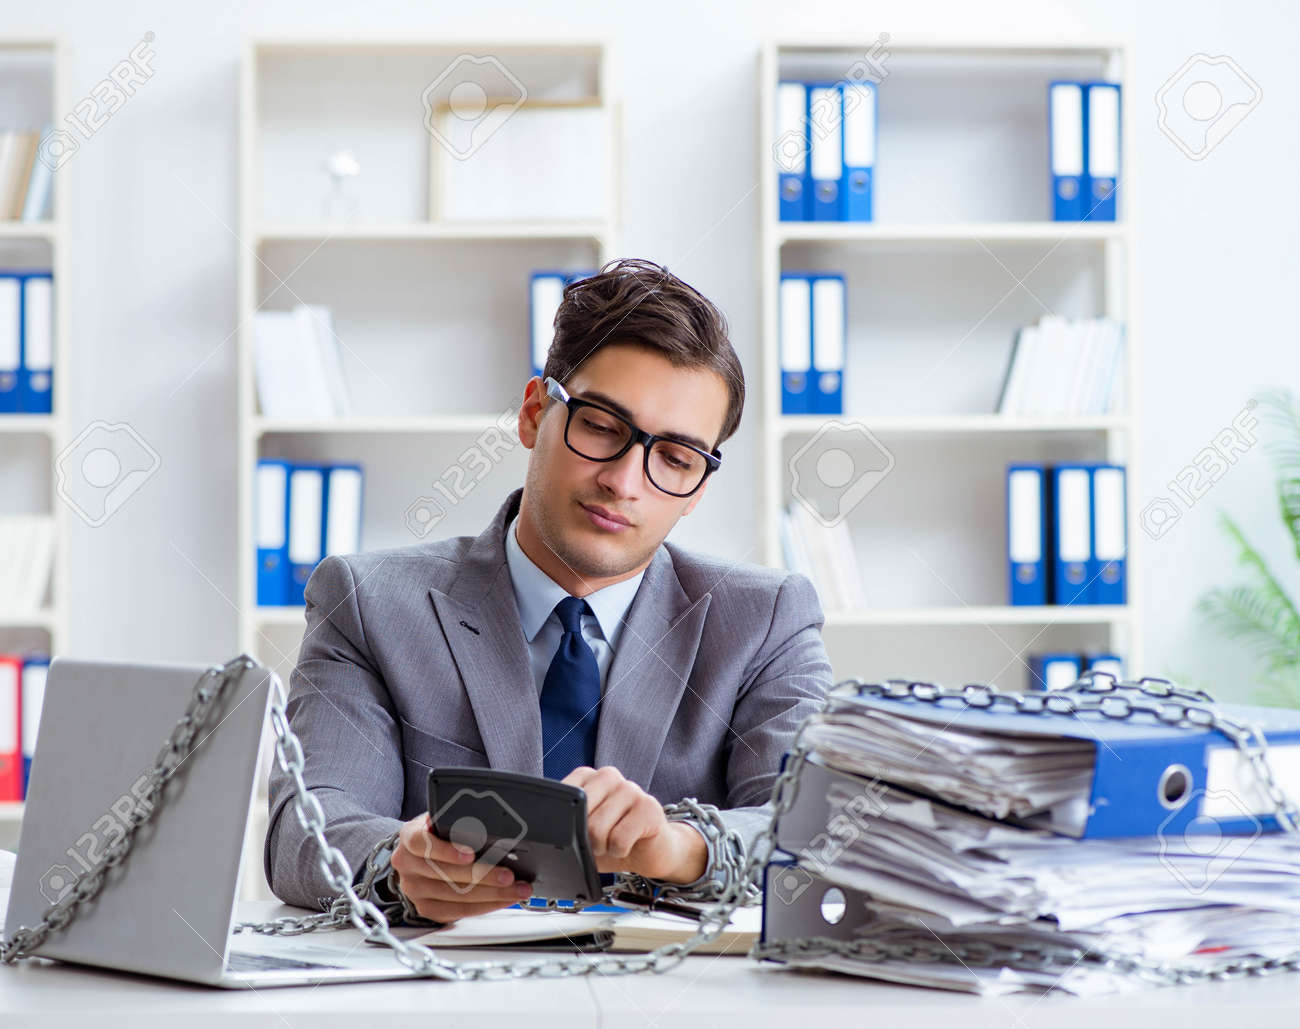 Busy employee chained to his office desk - 153212972